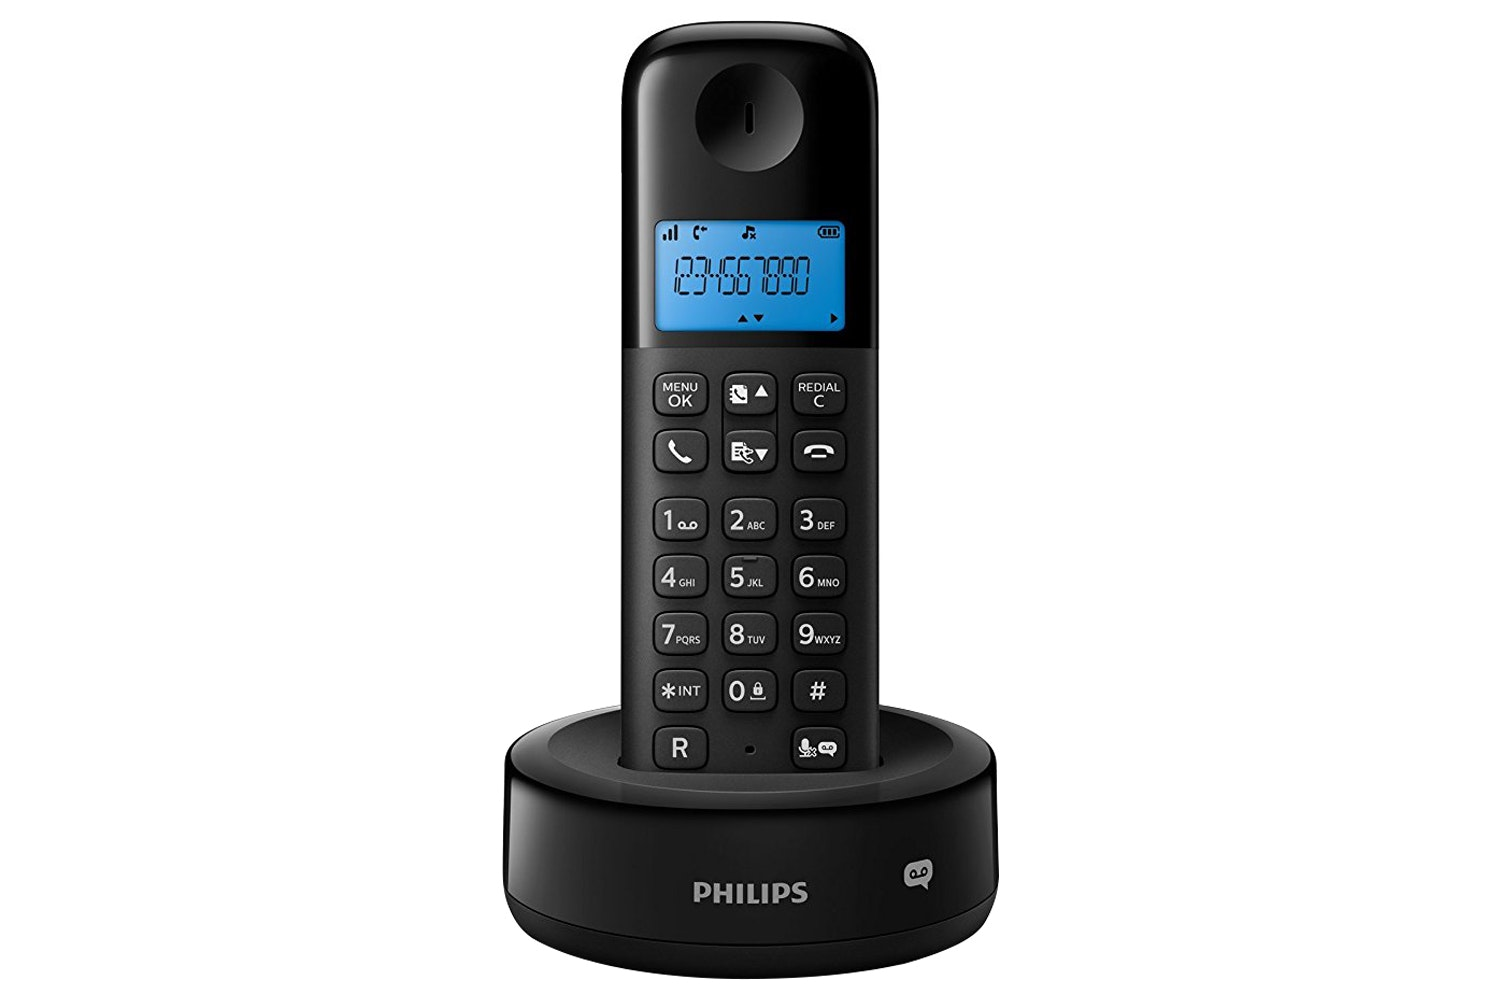 Philips Twin Pack Cordless Phone | D1352B/05